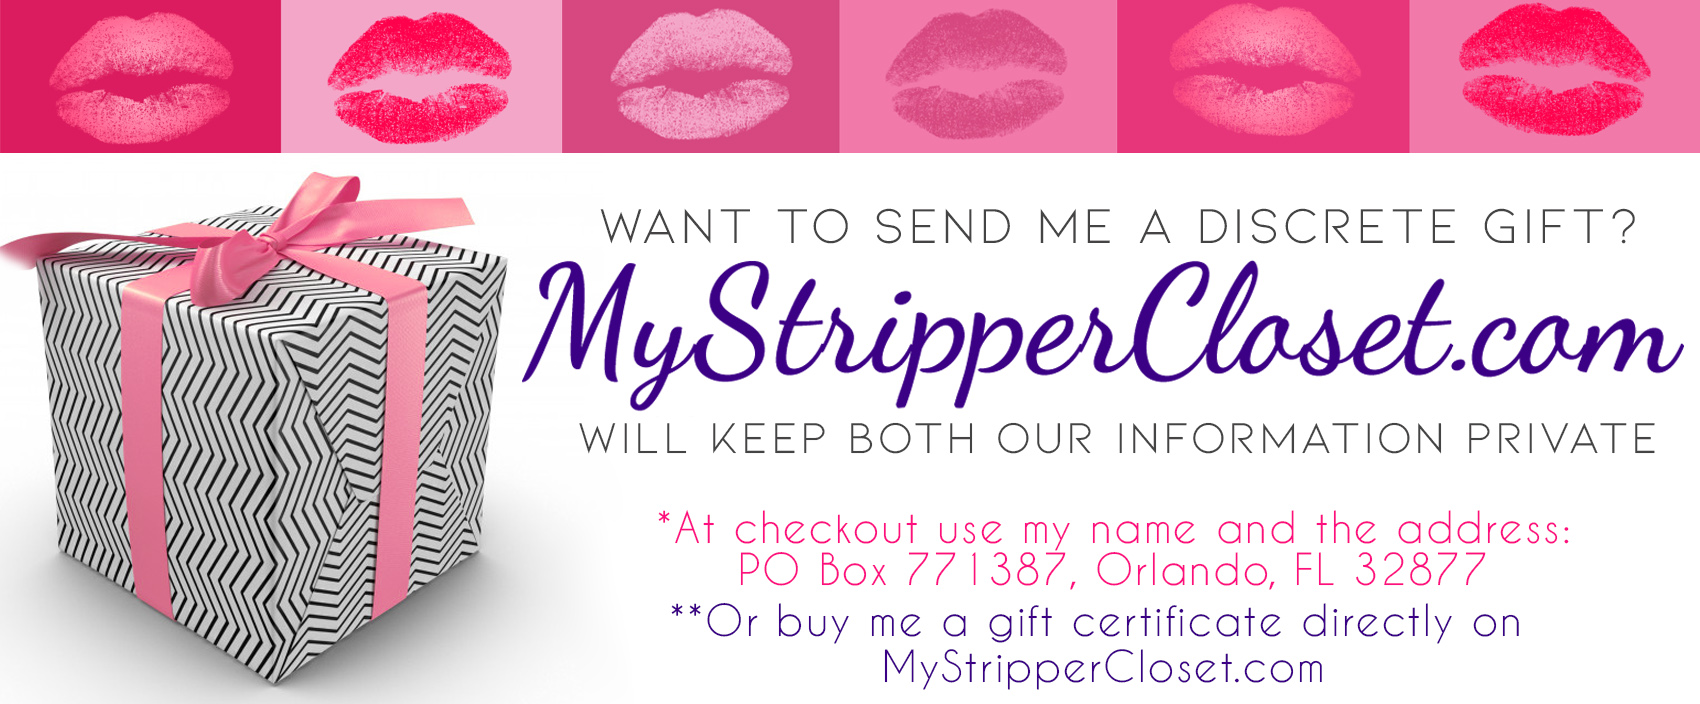 gift-certificate-girls-websites-mystrippercloset.com.jpg